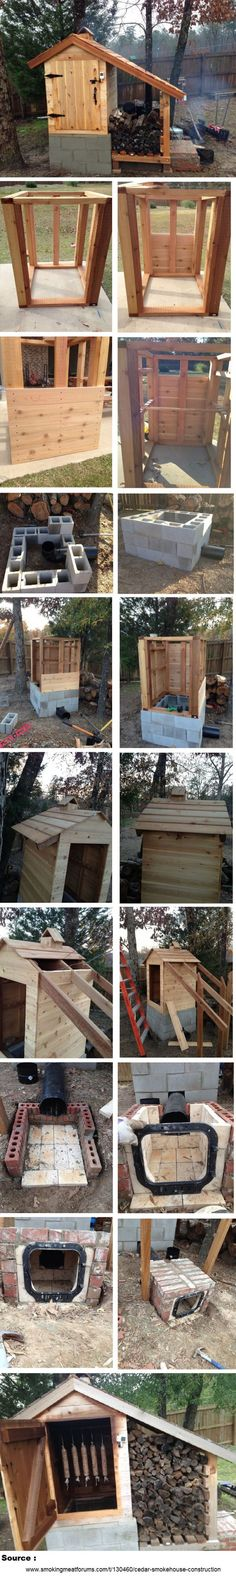 Learn How To Build A Smokehouse With This Awesome Project! from Smoking Meat…